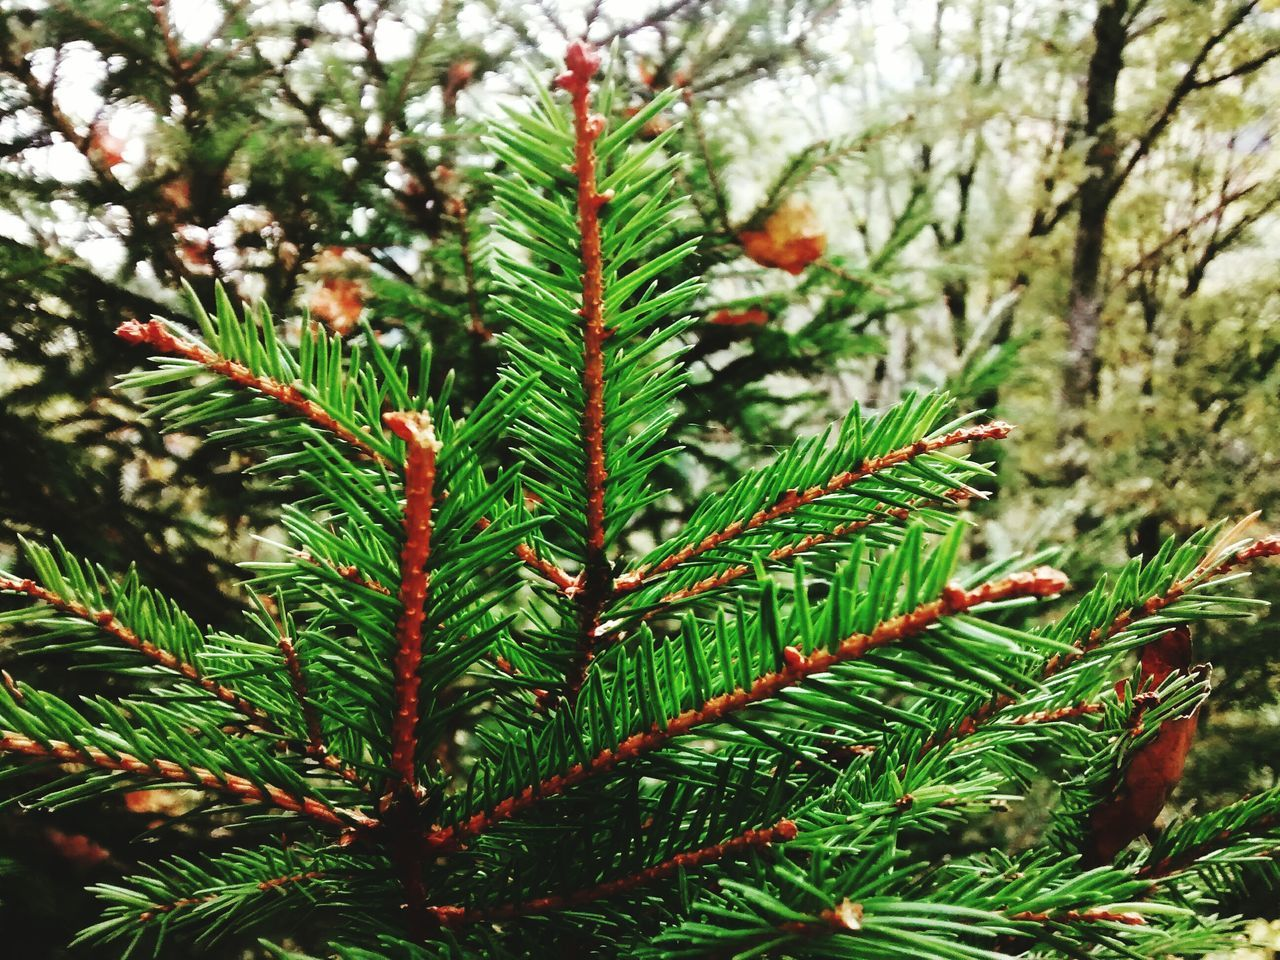 green color, growth, nature, focus on foreground, tree, pine tree, day, no people, beauty in nature, close-up, needle - plant part, leaf, branch, selective focus, plant, pinaceae, outdoors, needle, spruce tree, freshness, fir tree